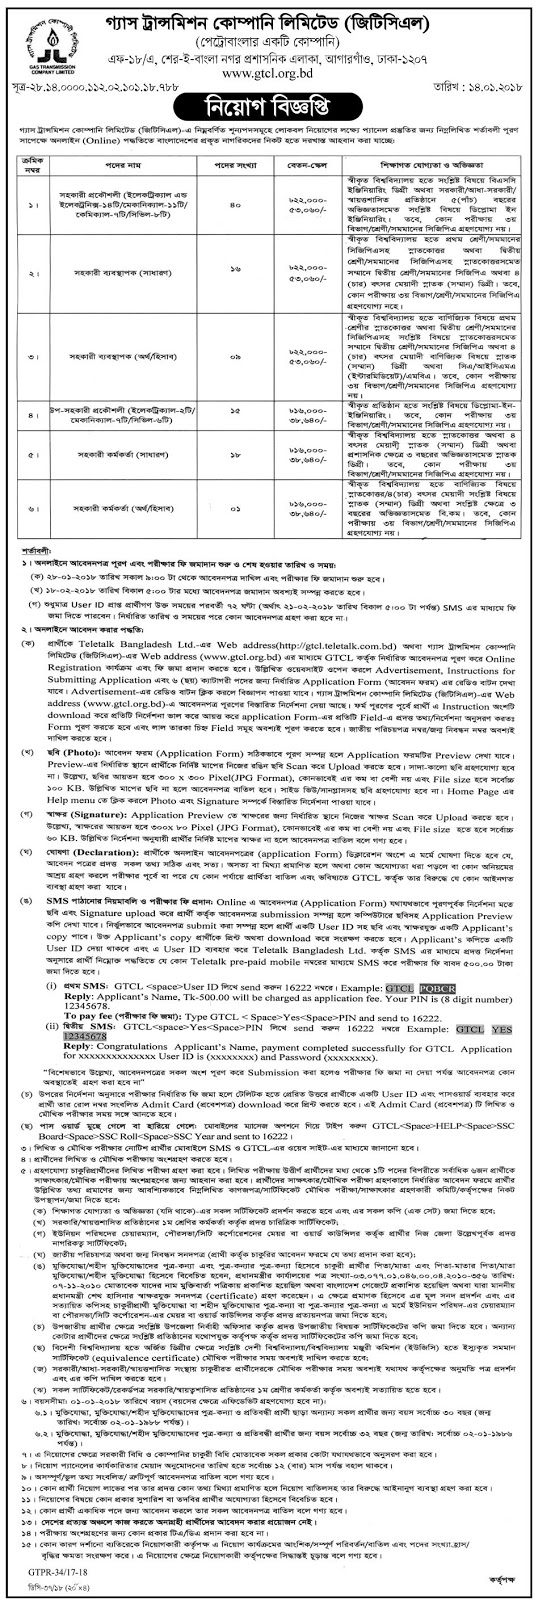 GTCL - Gas Transmission Company Limited Job Circular 2018